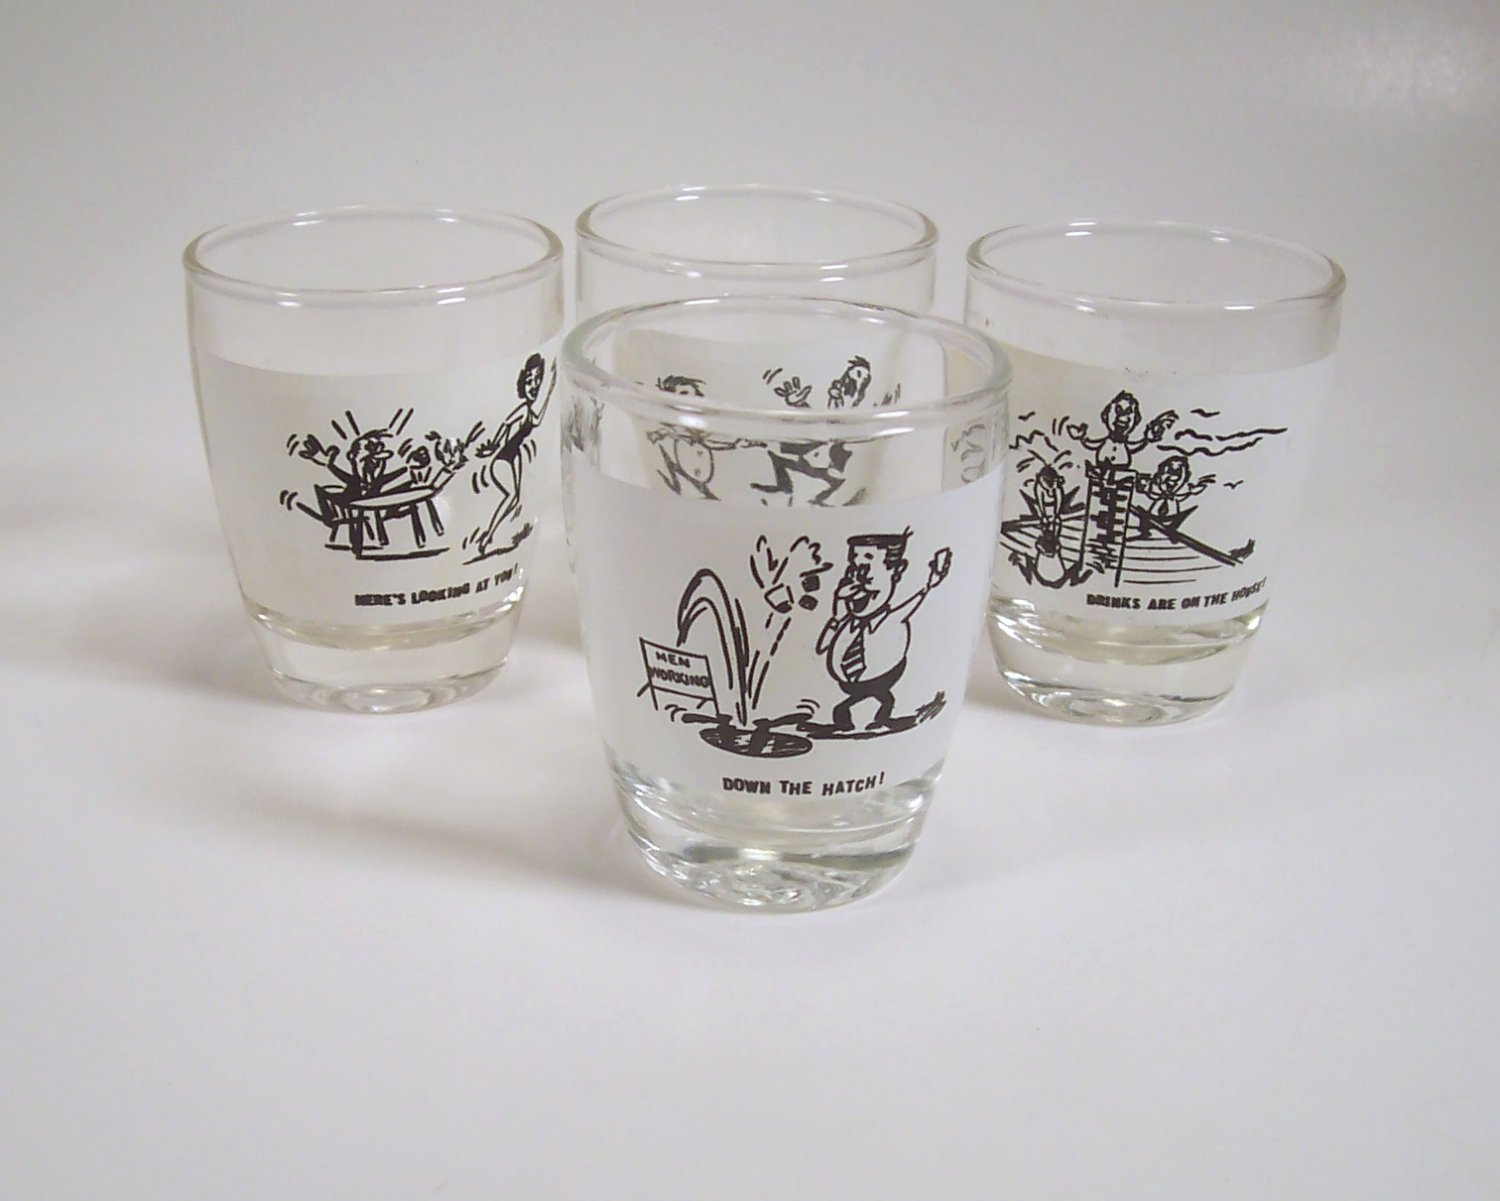 Set of 4 Vintage Cartoon Shot Glasses Mid Century Modern Humor